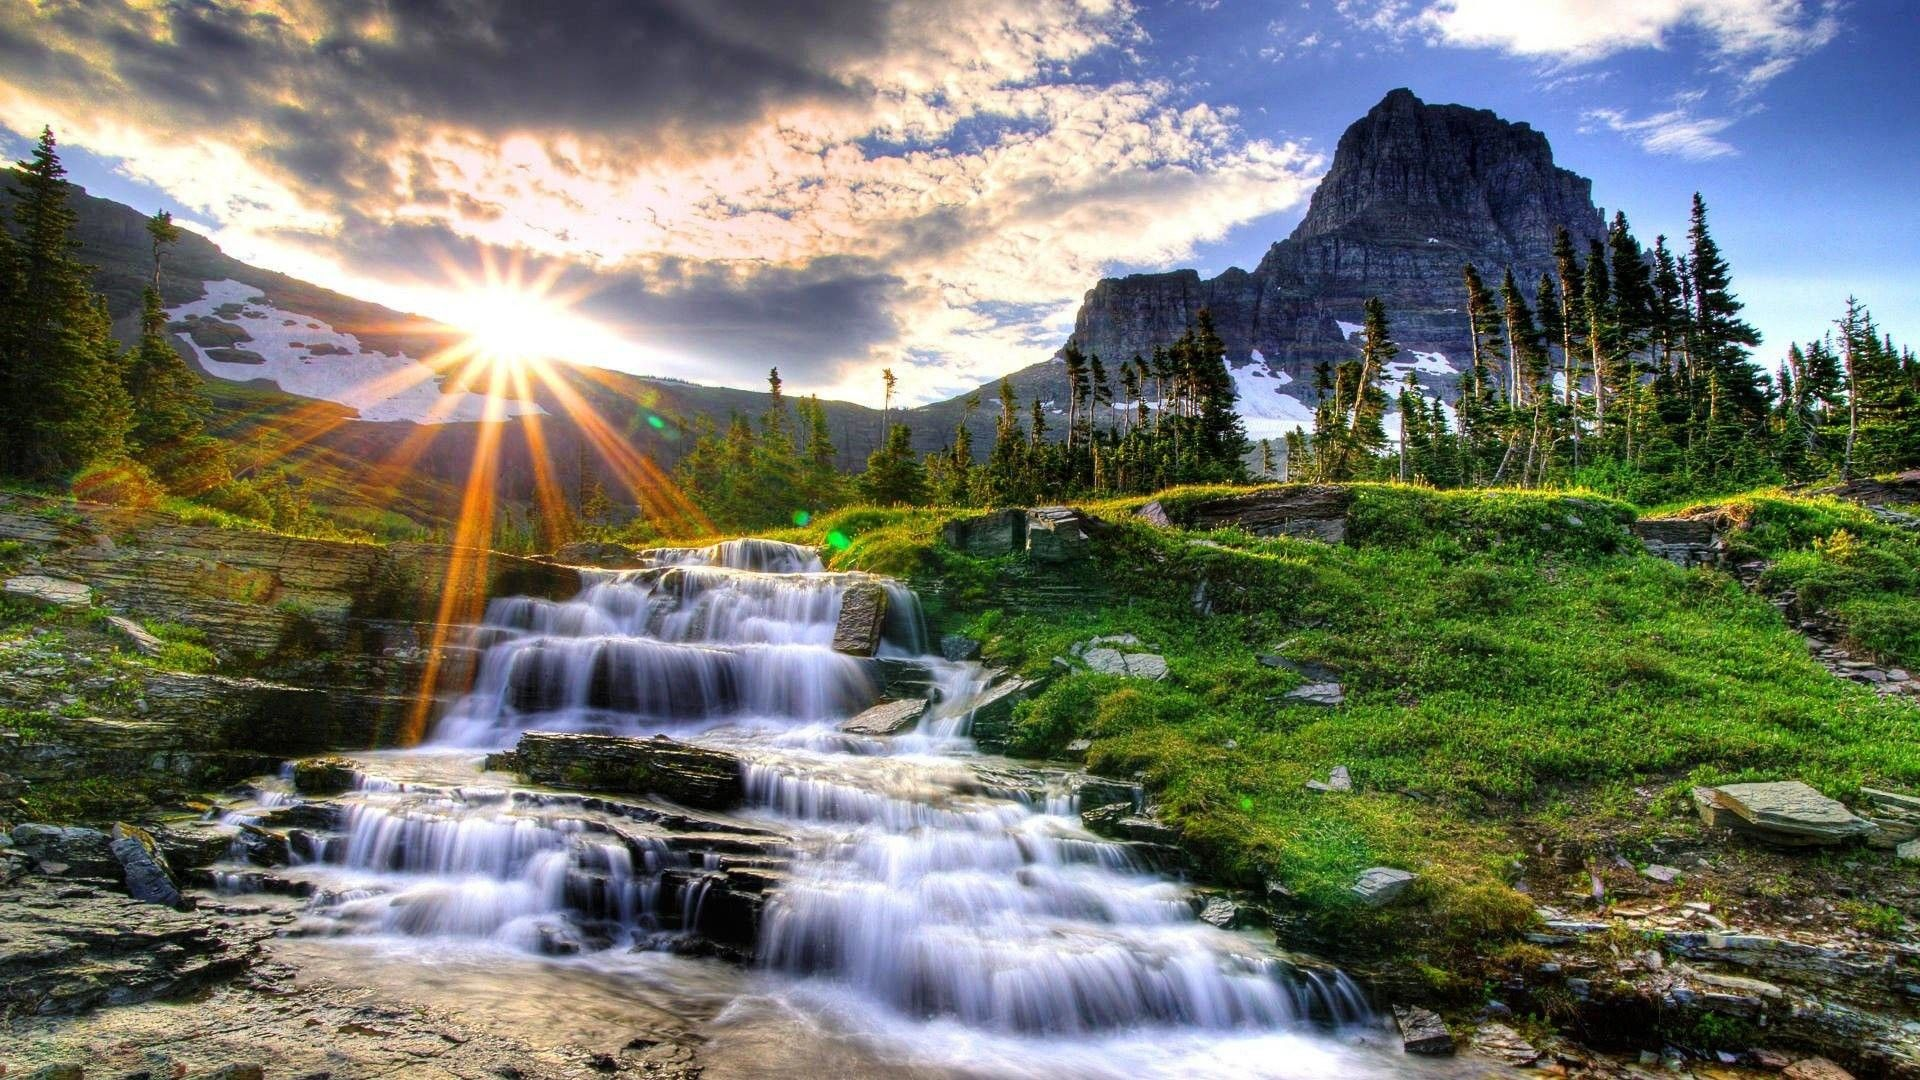 Beautiful Waterfall With Sun Rise 19201080 Nature Desktop Wallpaper Desktop Background Nature Hd Nature Wallpapers